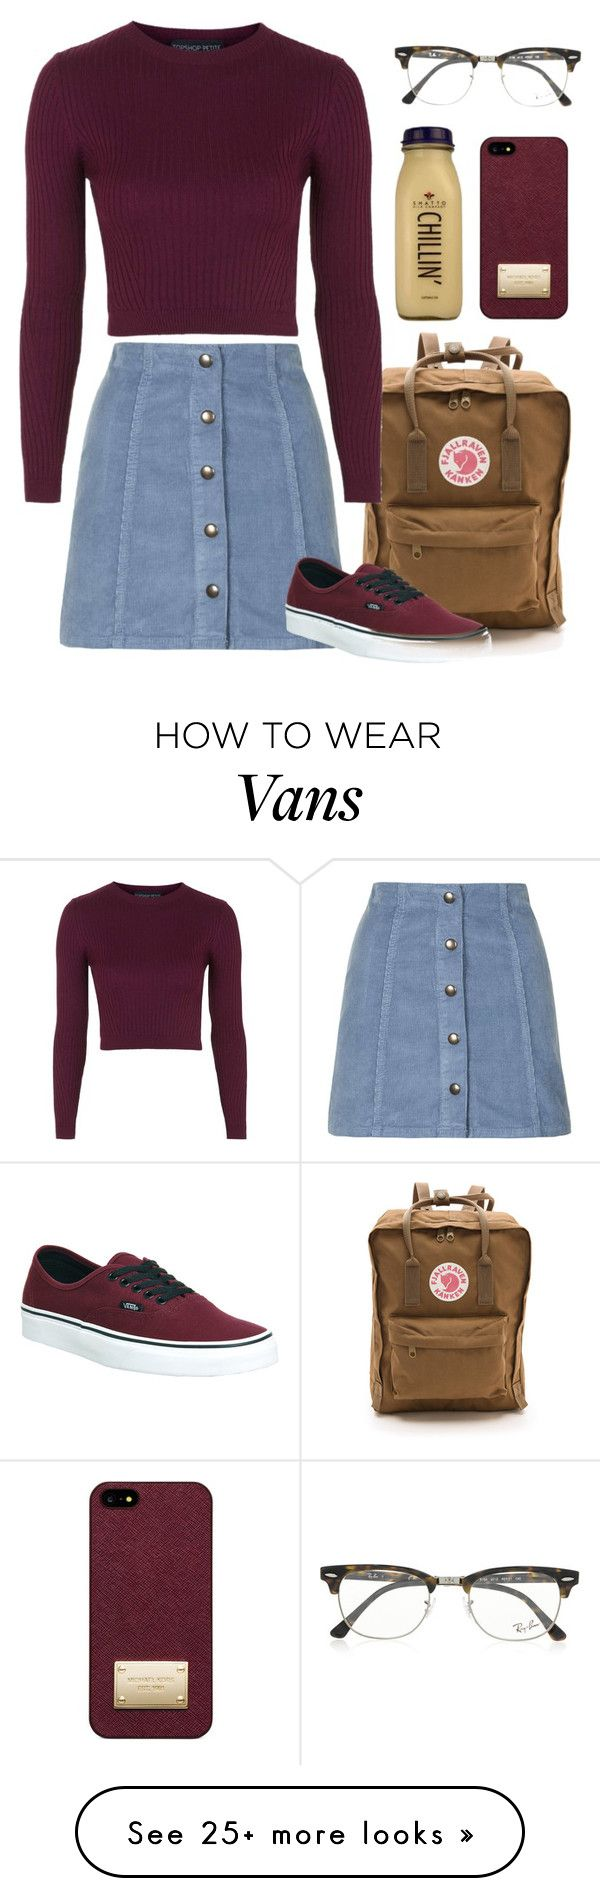 395 by kristinabragina on polyvore featuring co topshop fj llr ven vans. Black Bedroom Furniture Sets. Home Design Ideas